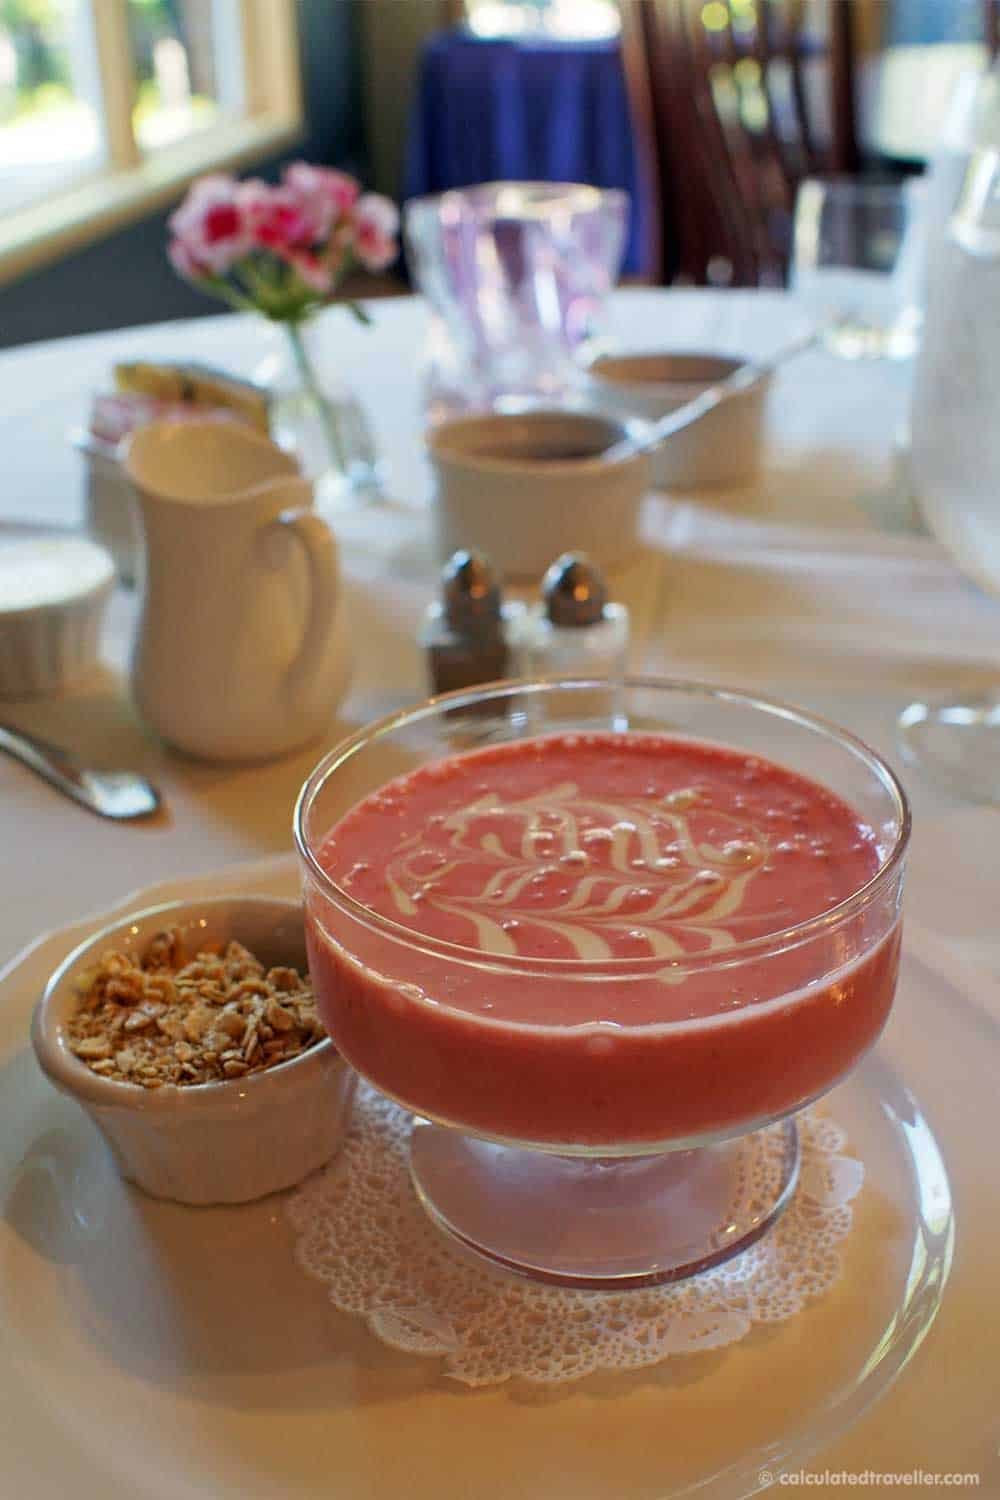 Relaxing Elegance at River Spring Lodge Darien Center New York - Chilled Strawberry Soup